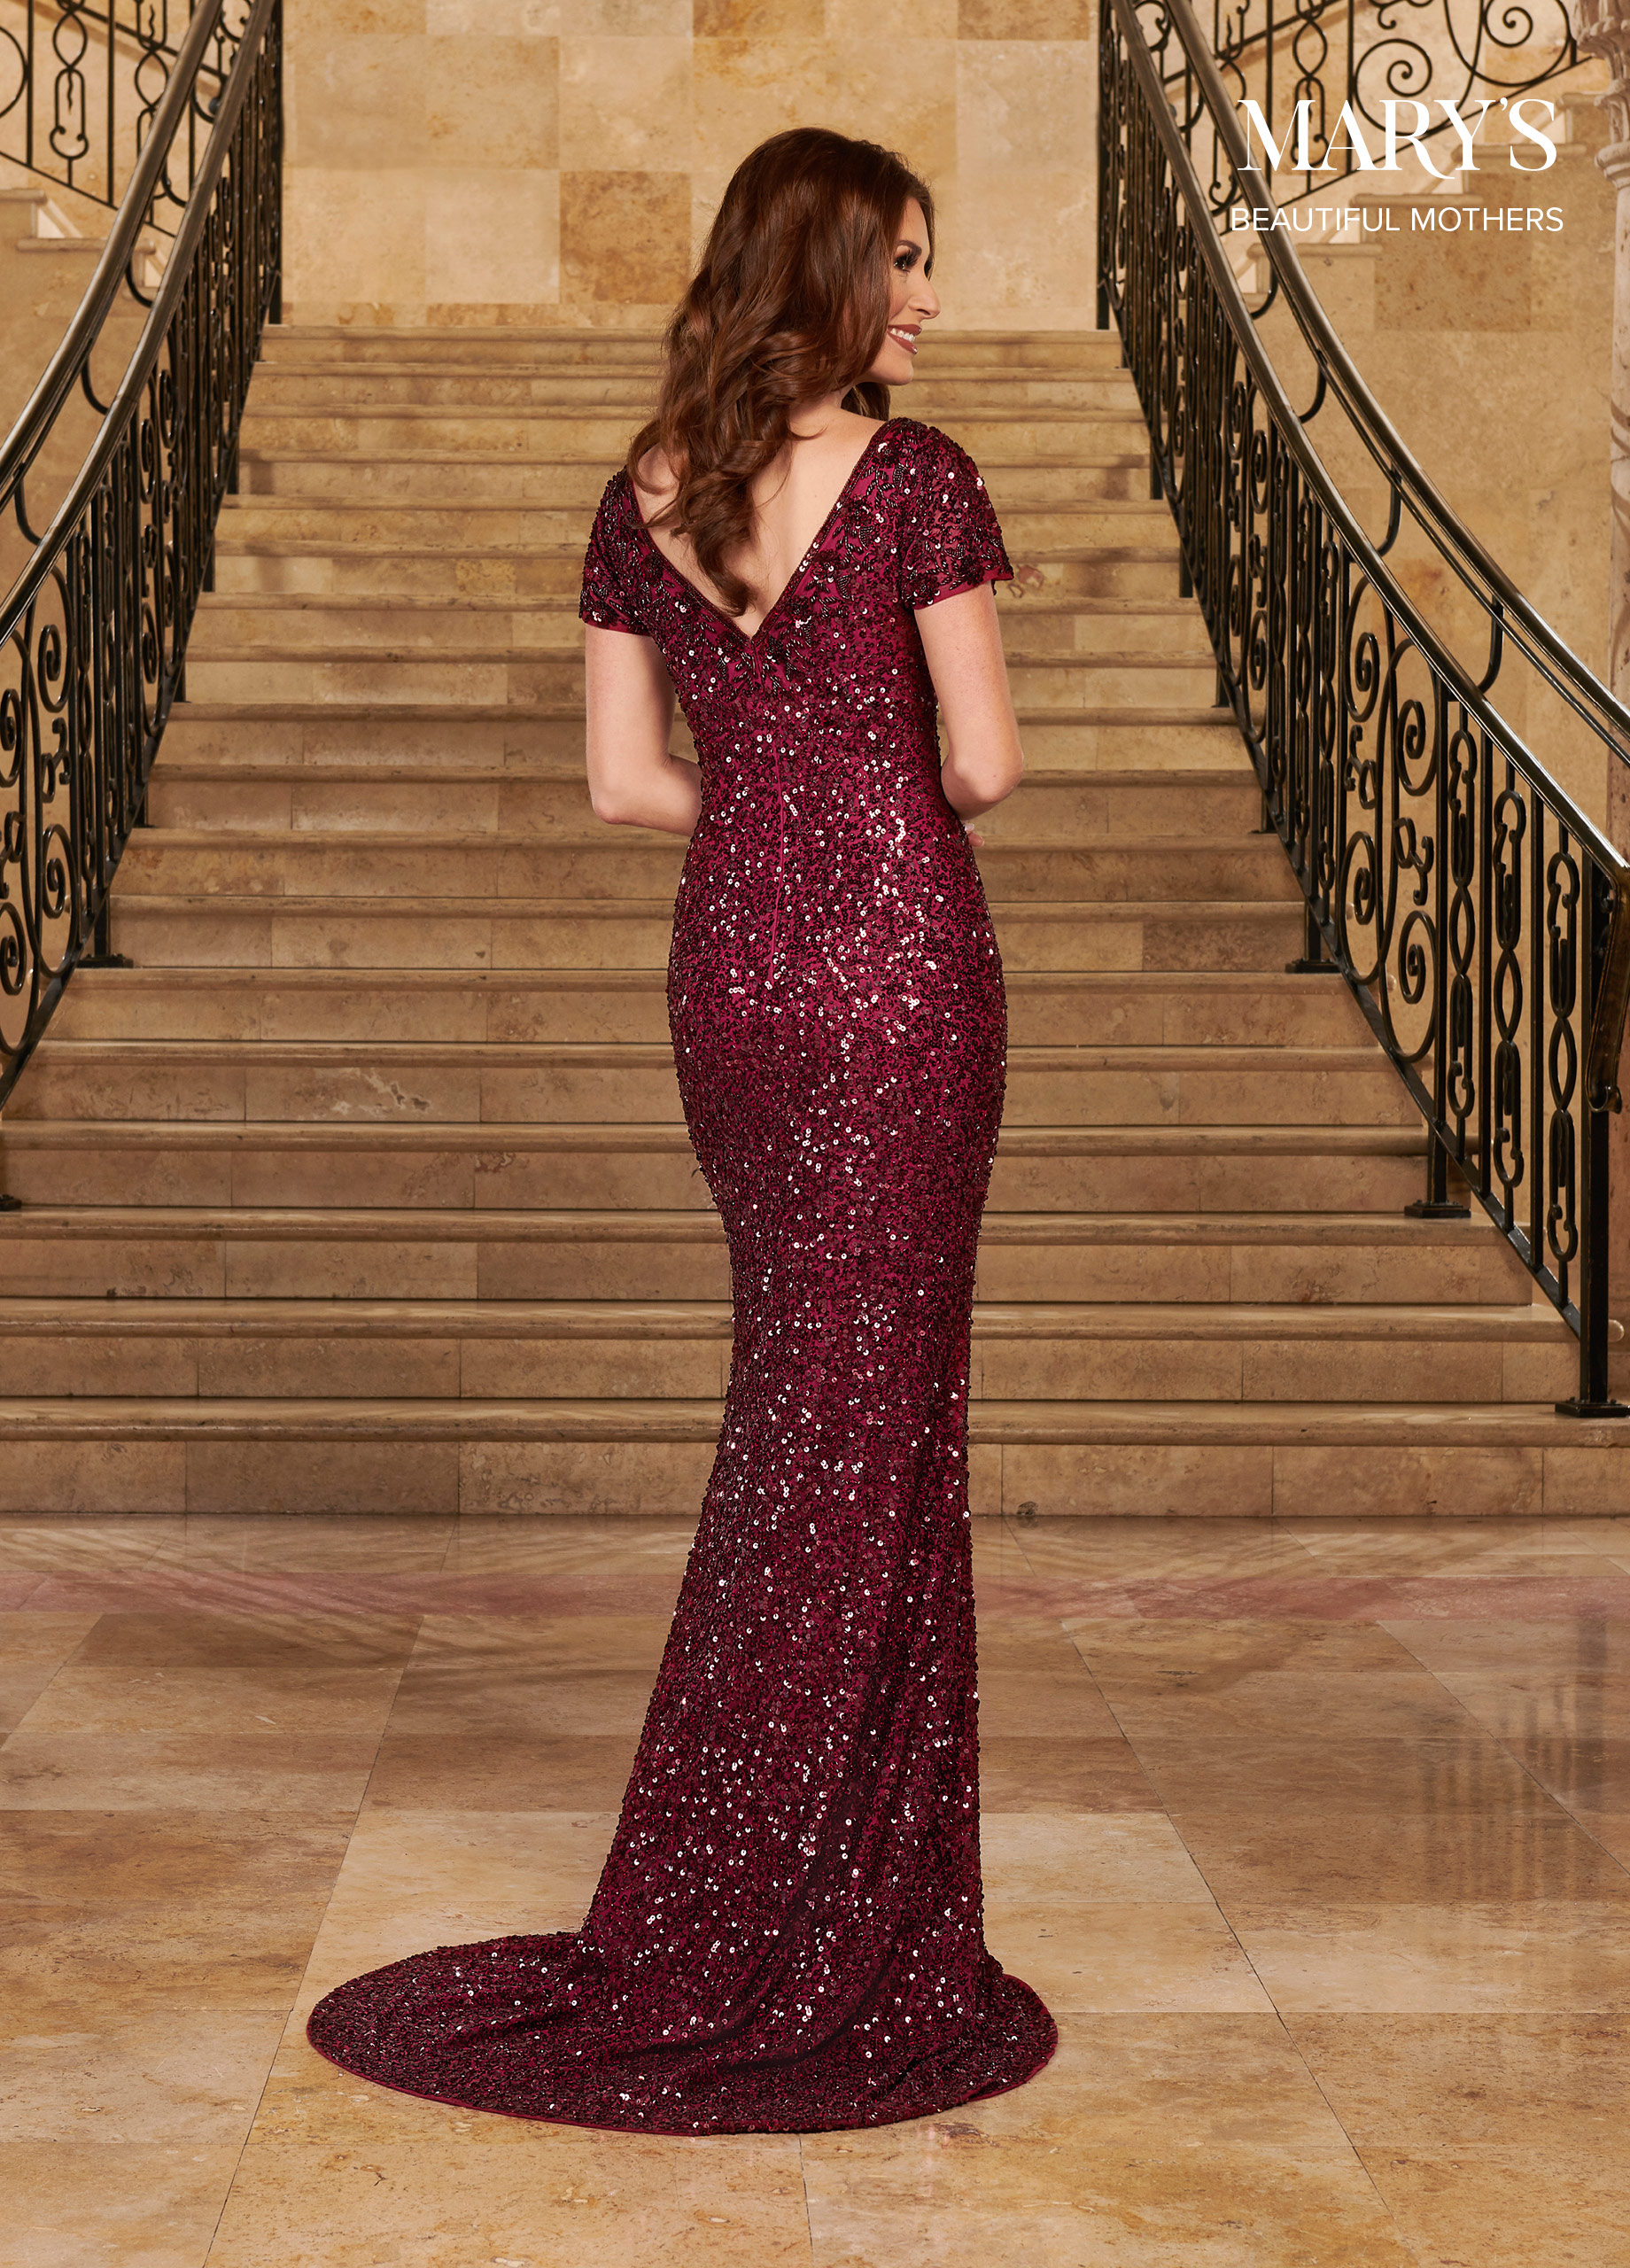 Mother Of The Bride Dresses | Beautiful Mothers | Style - MB8094